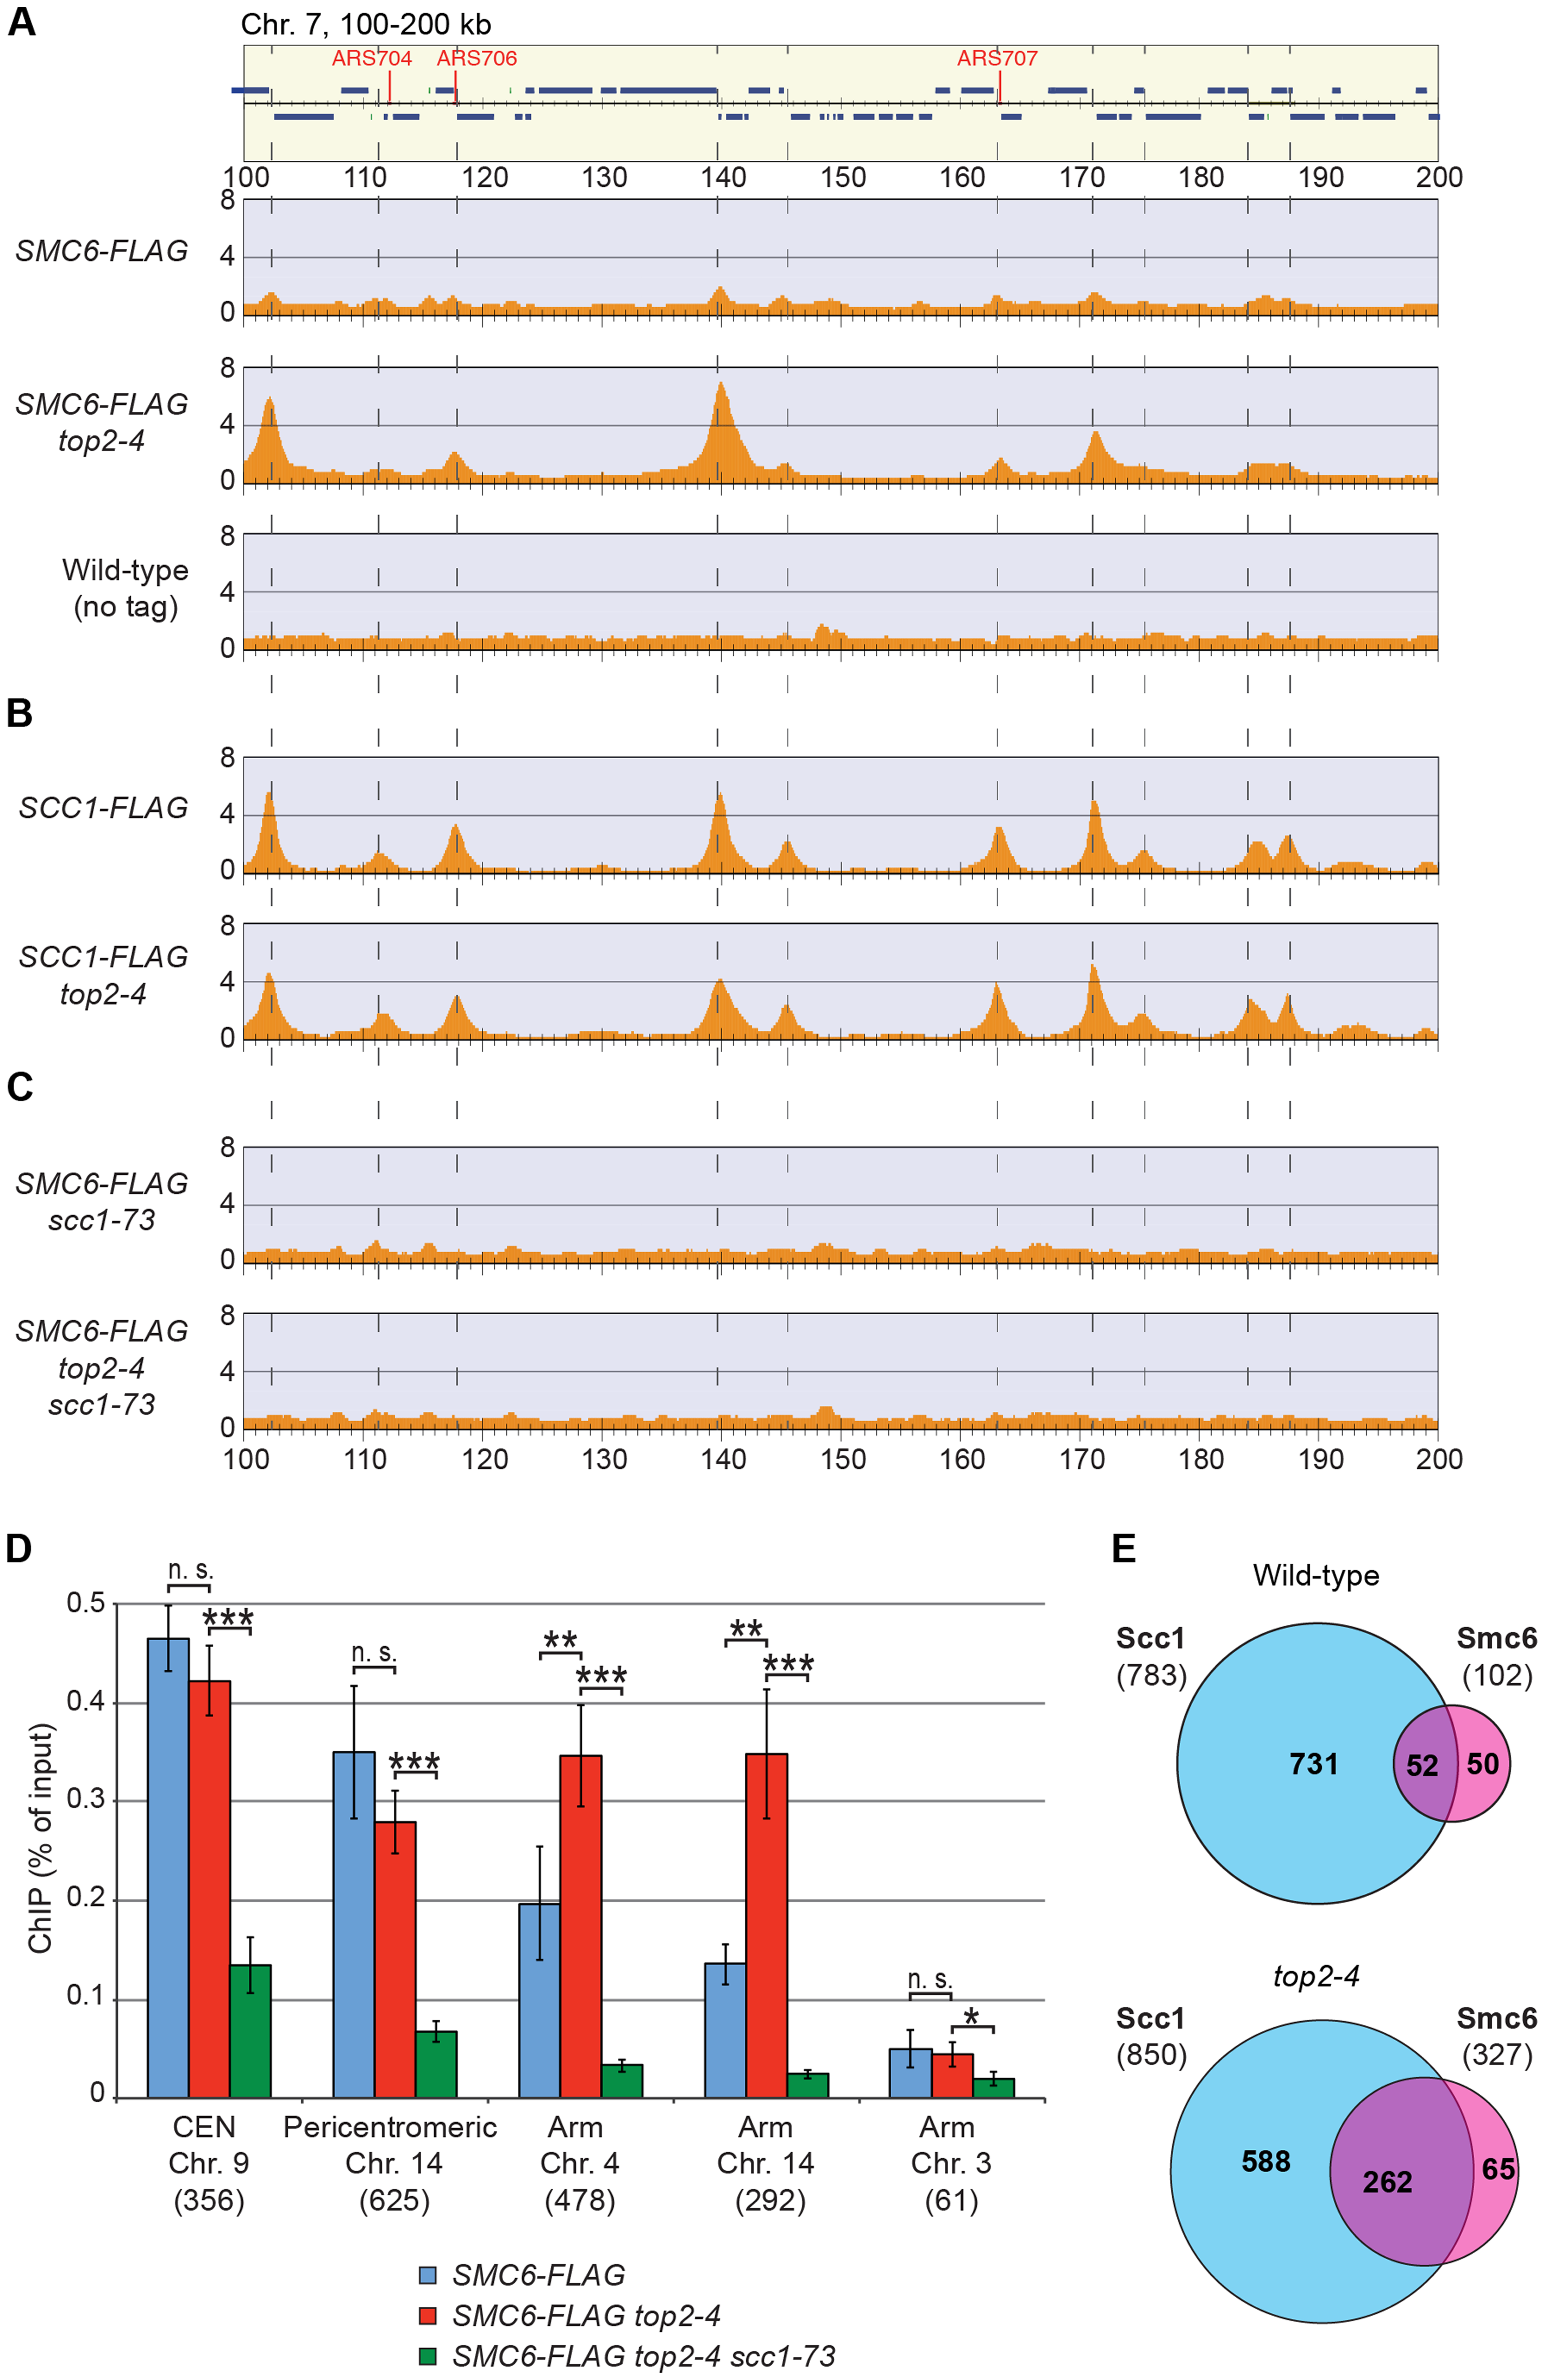 Smc5/6 accumulates on chromosomes after Top2 inhibition, and co-localizes with cohesin in both wild-type and <i>top2-4</i> cells.